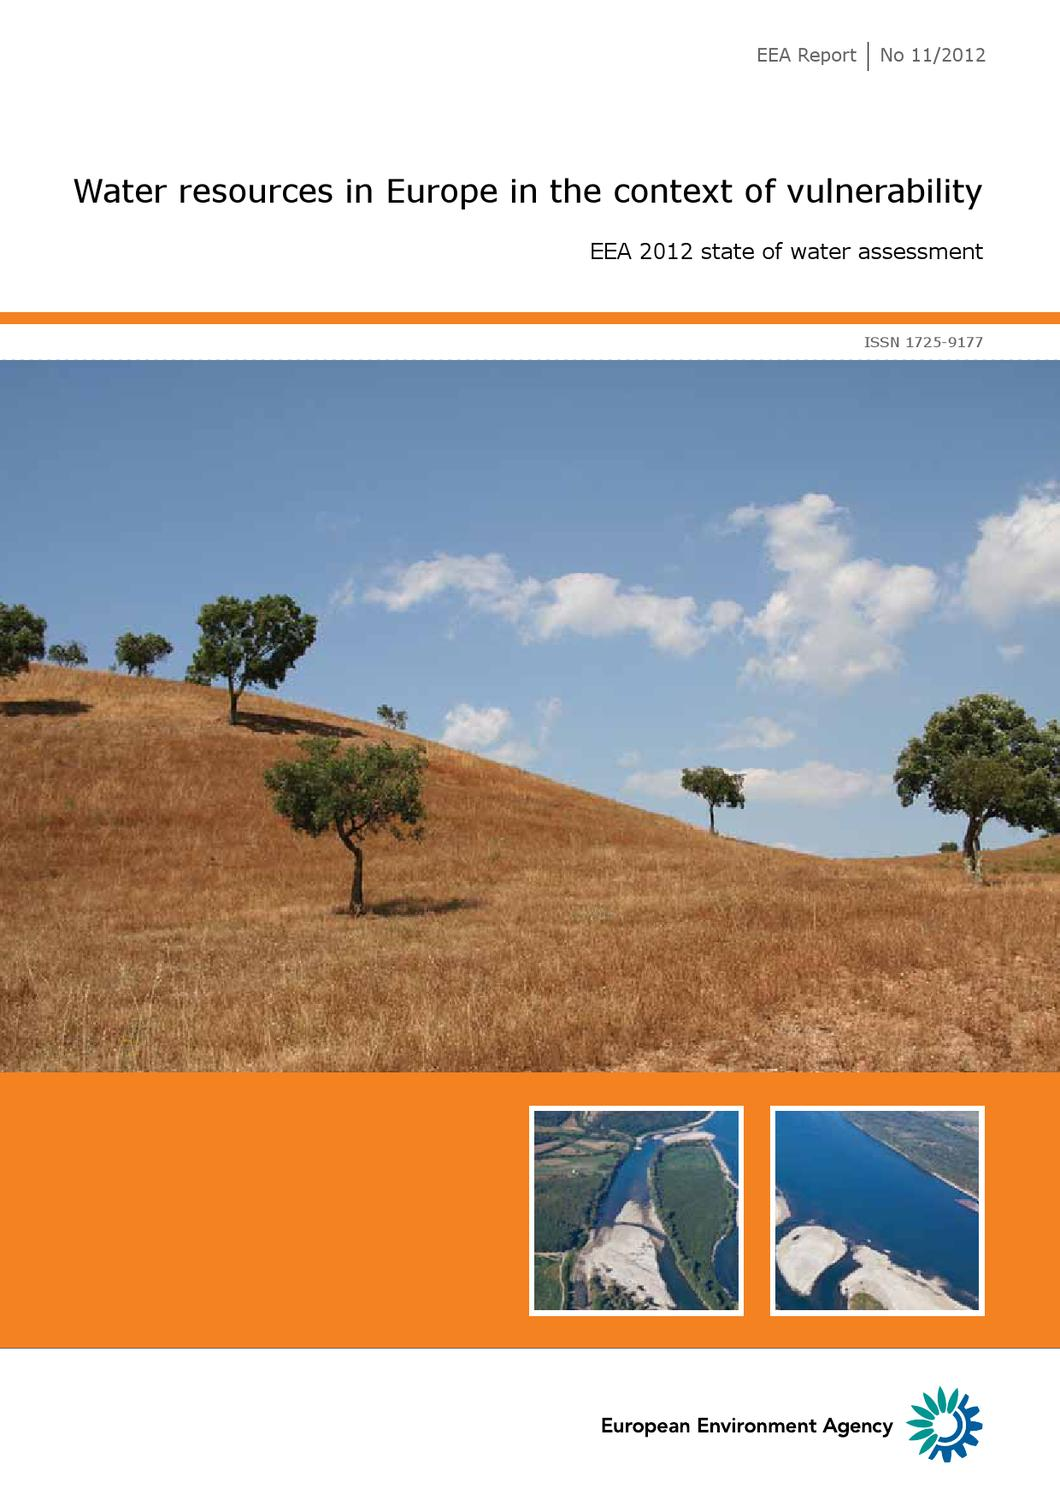 Salm Karlsruhe Water Resources In Europe In The Context Of Vulnerability By Christina Dian Parmionova - Issuu